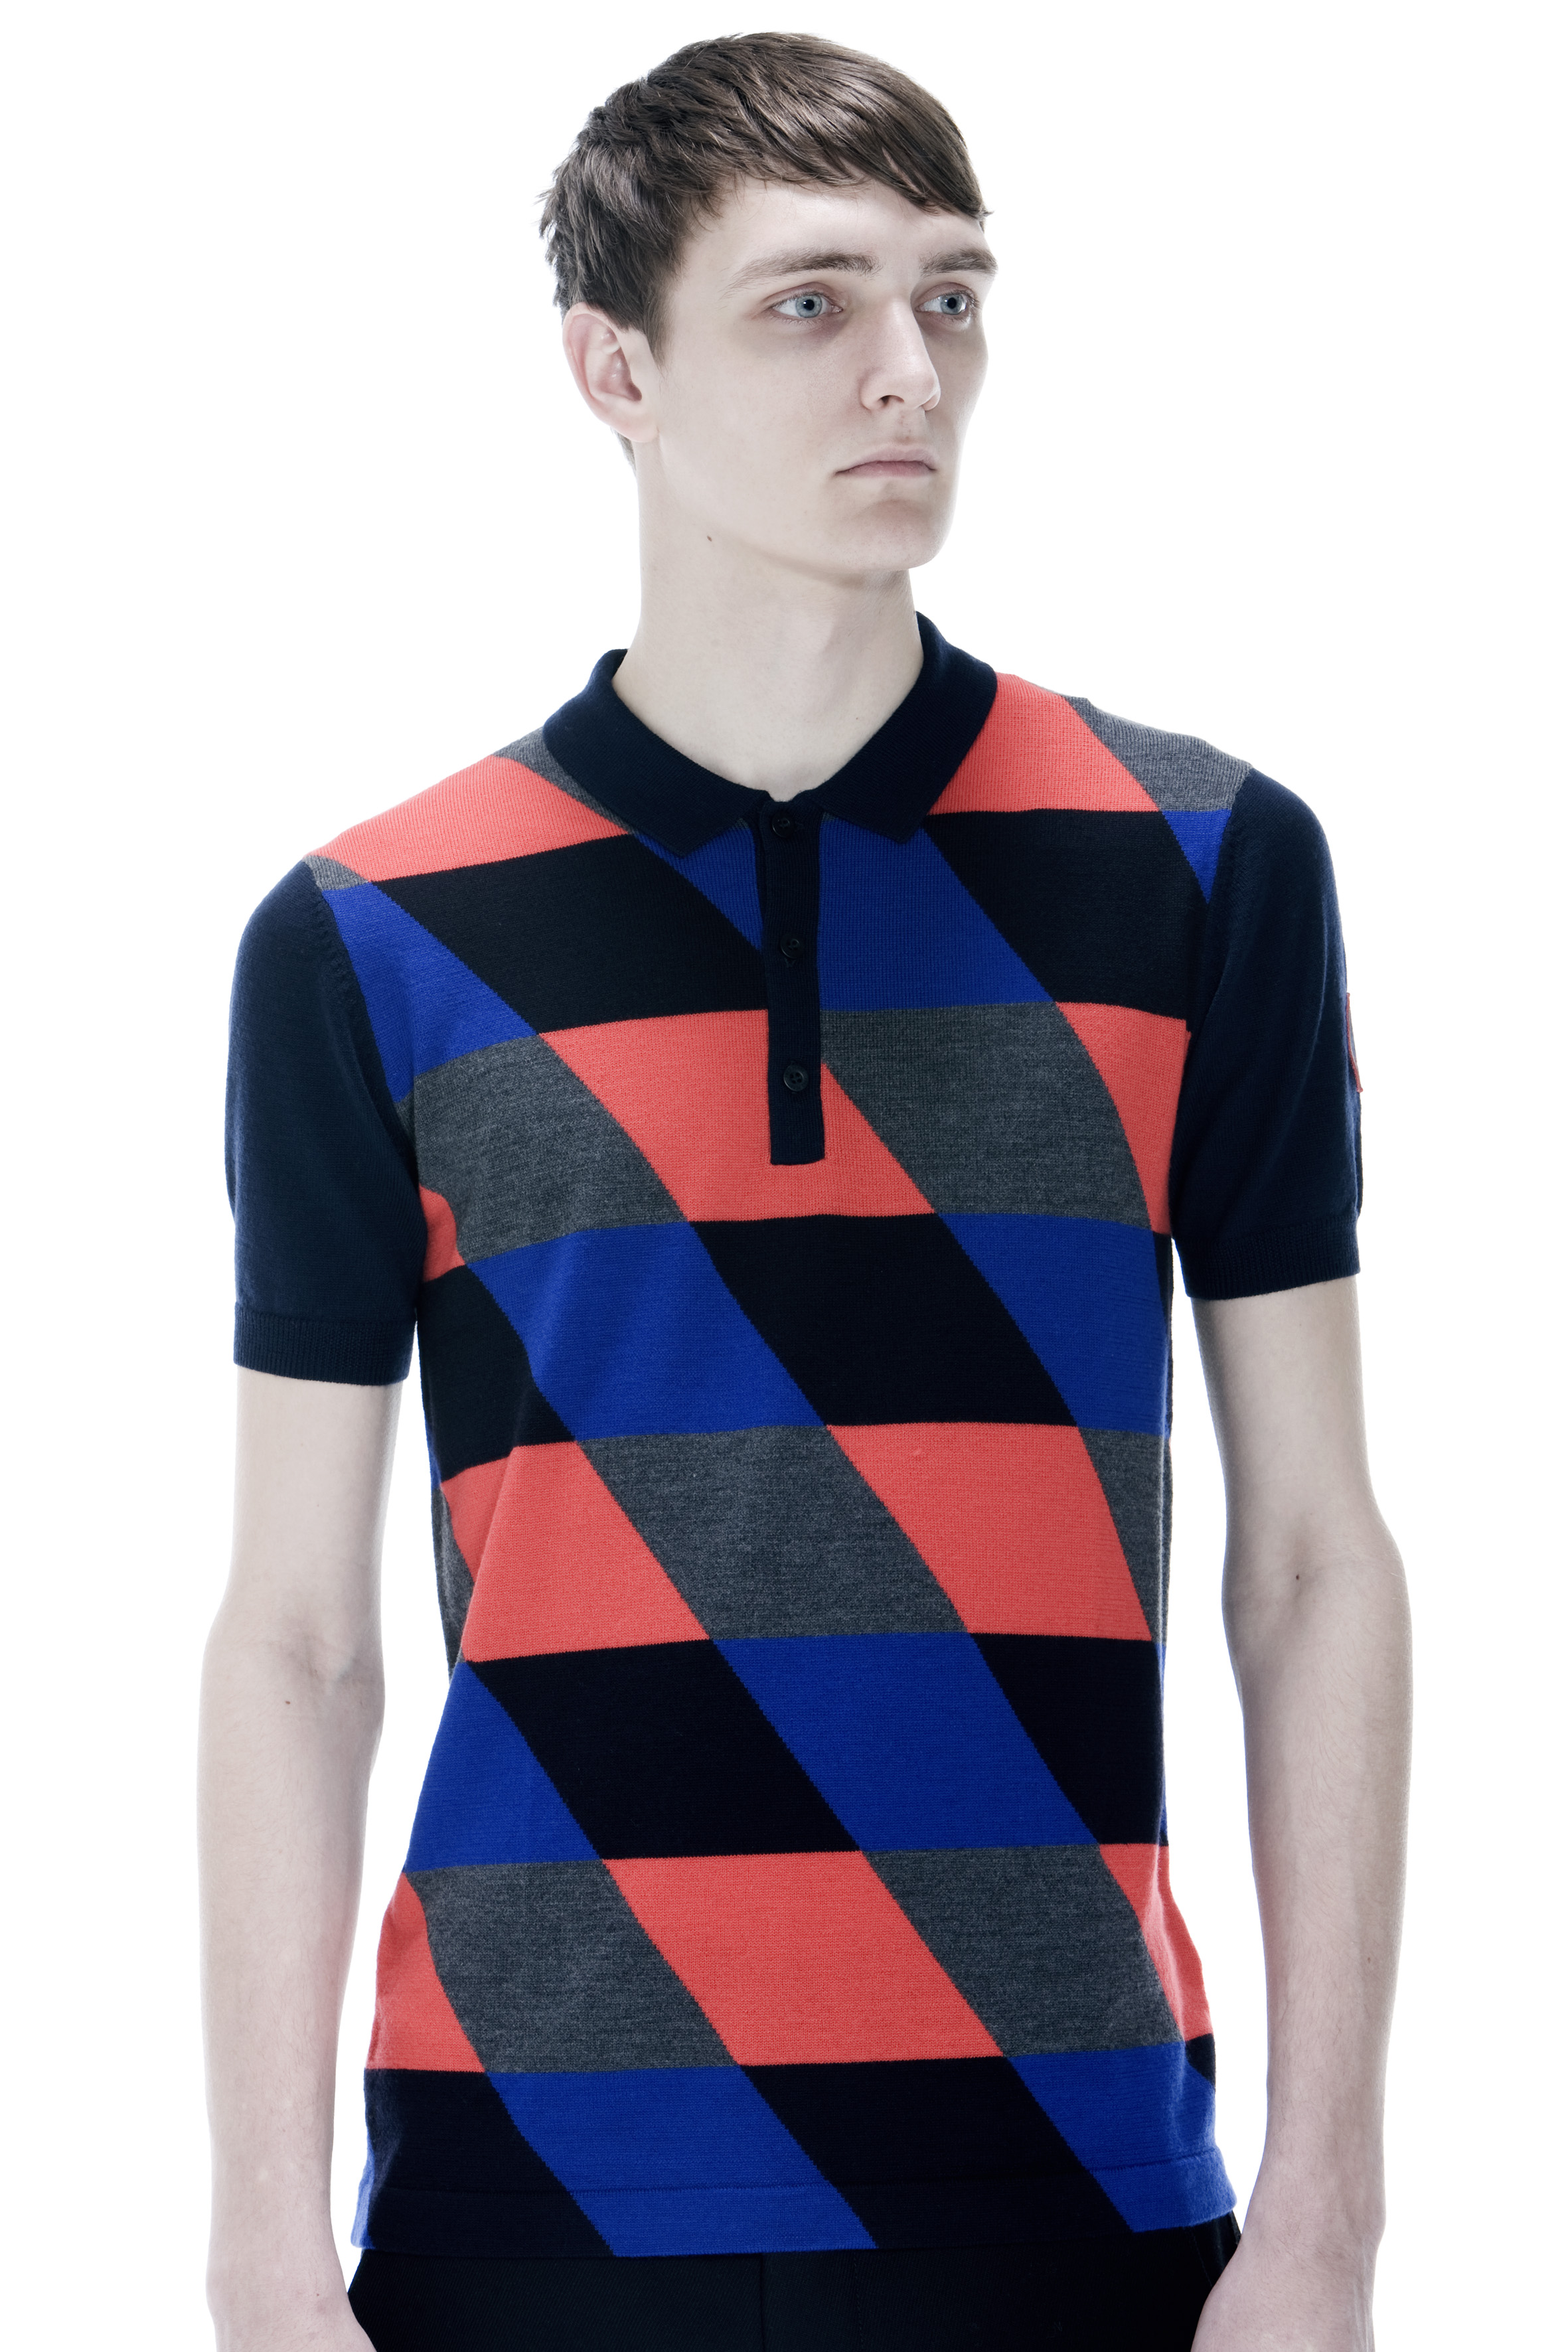 87bbb46e7d6b1 Stories  FRED PERRY TEAMS UP WITH RAF SIMONS